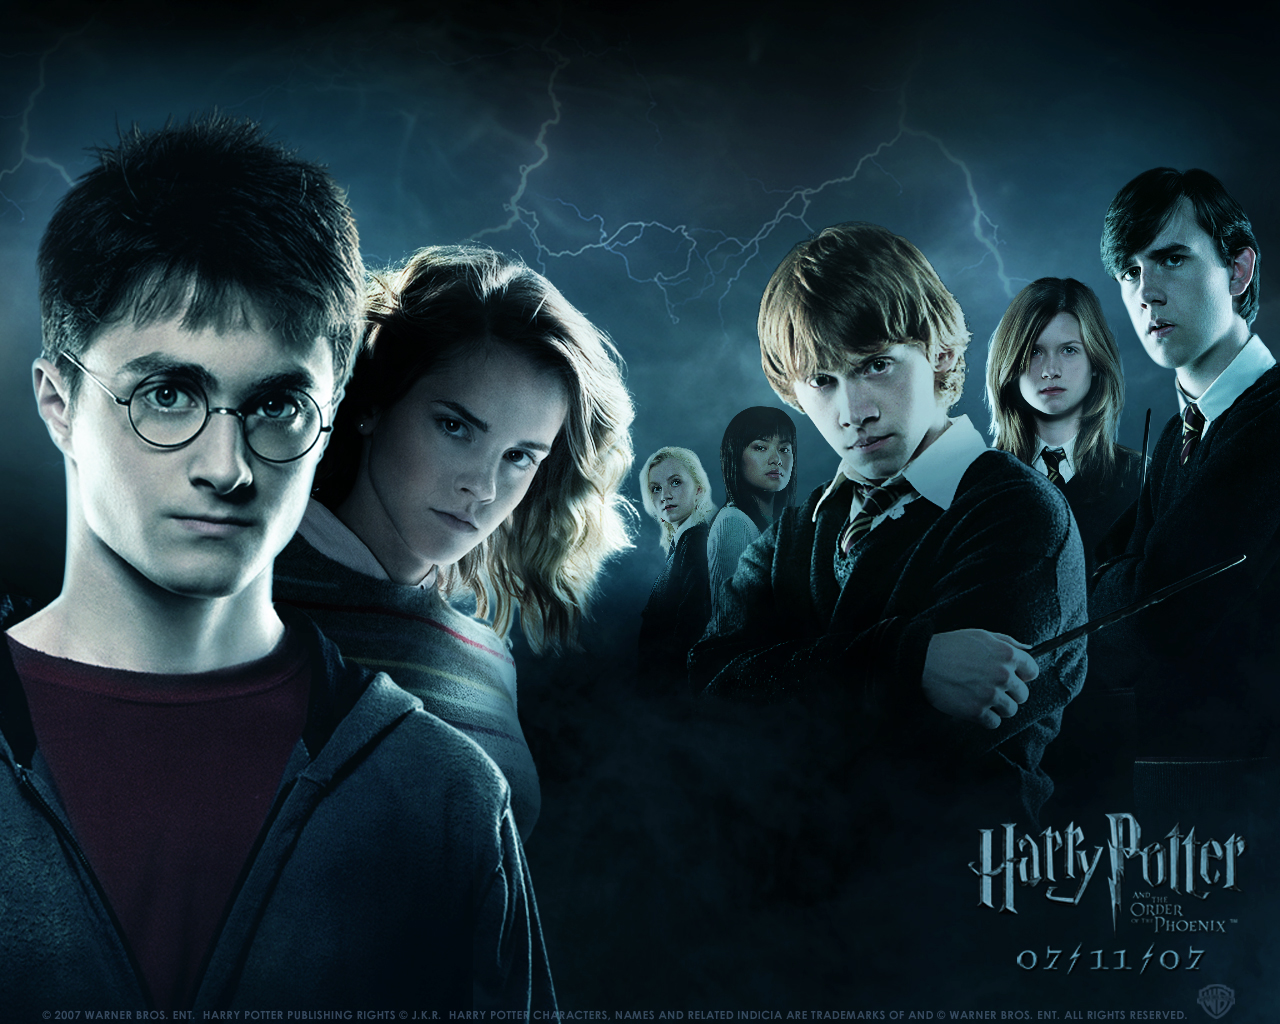 Harry potter spoilers we know how deathly hallows ends new pictures